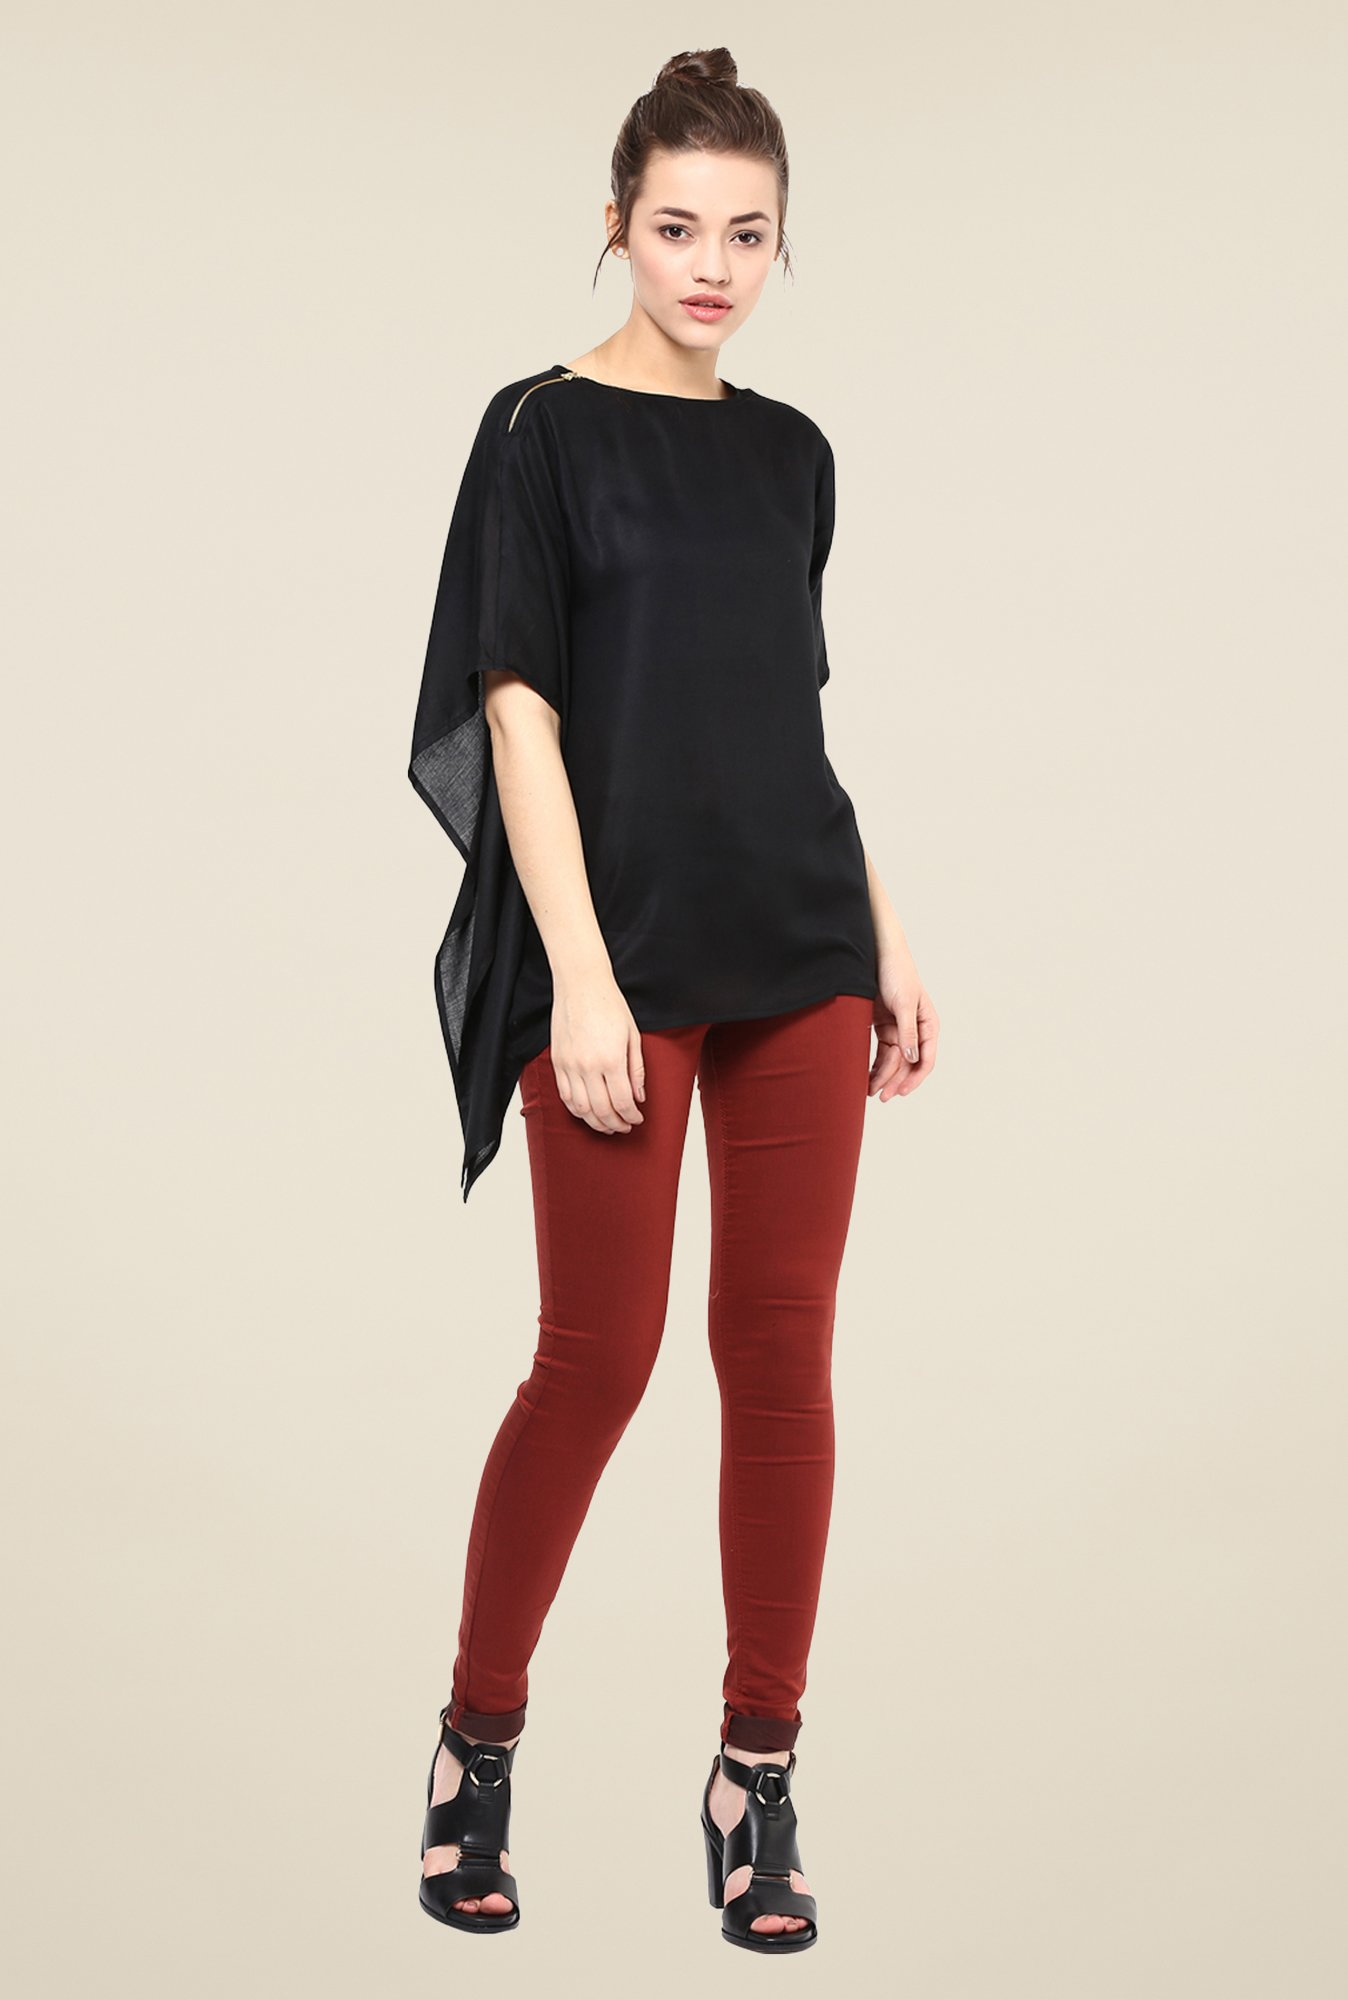 Femella Black Asymmetric Top